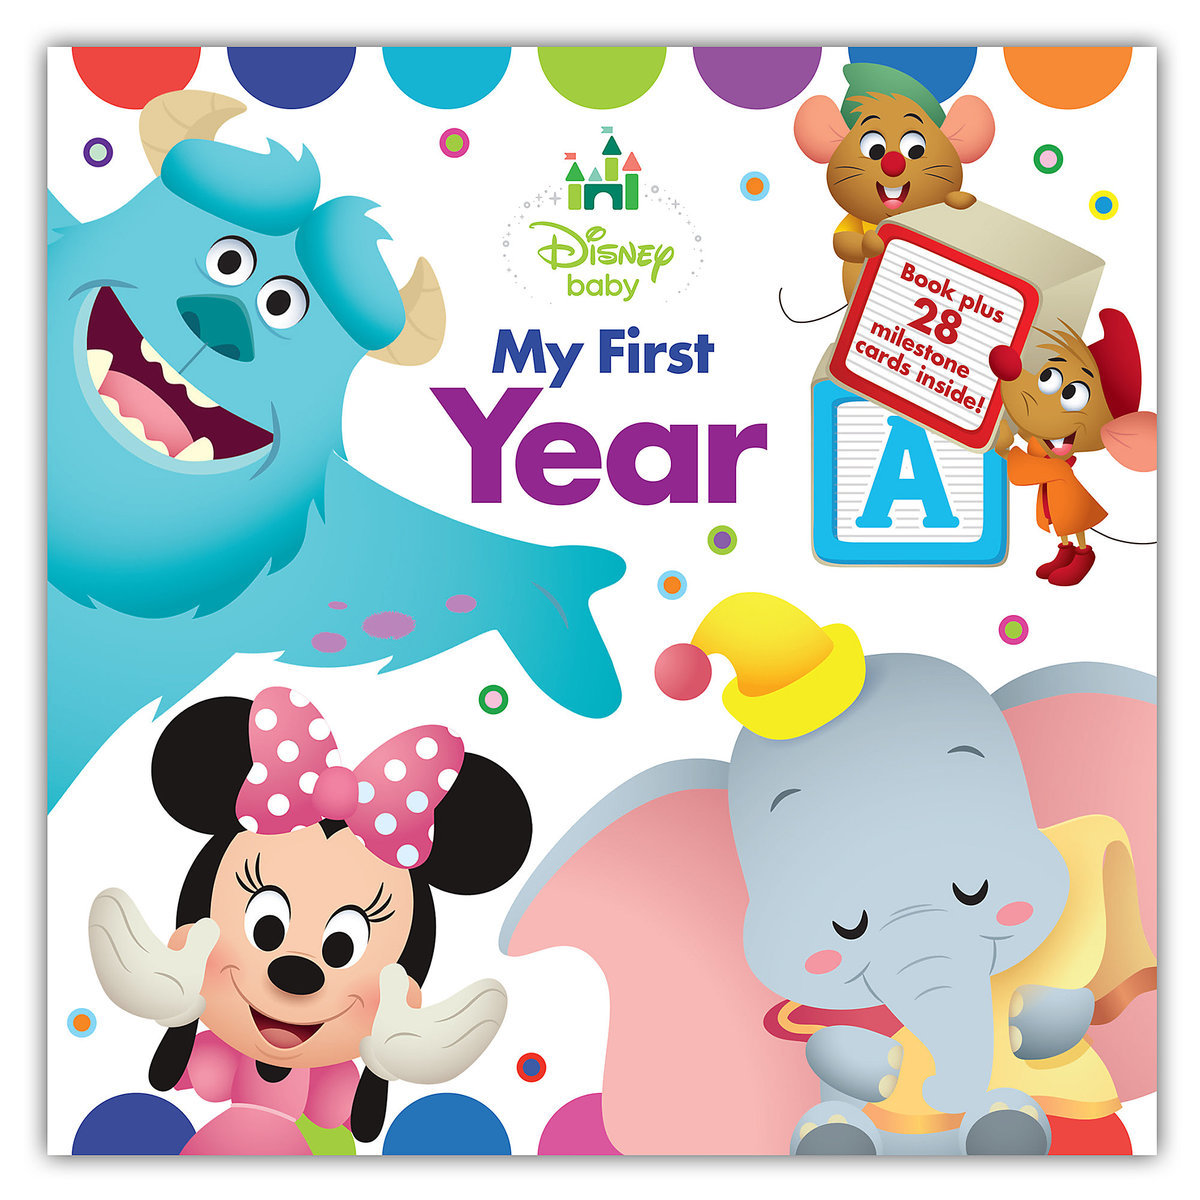 Top 25 Disney Gift Ideas for Babies featured by top US Disney blogger, Marcie and the Mouse: Disney Baby My First Year baby book